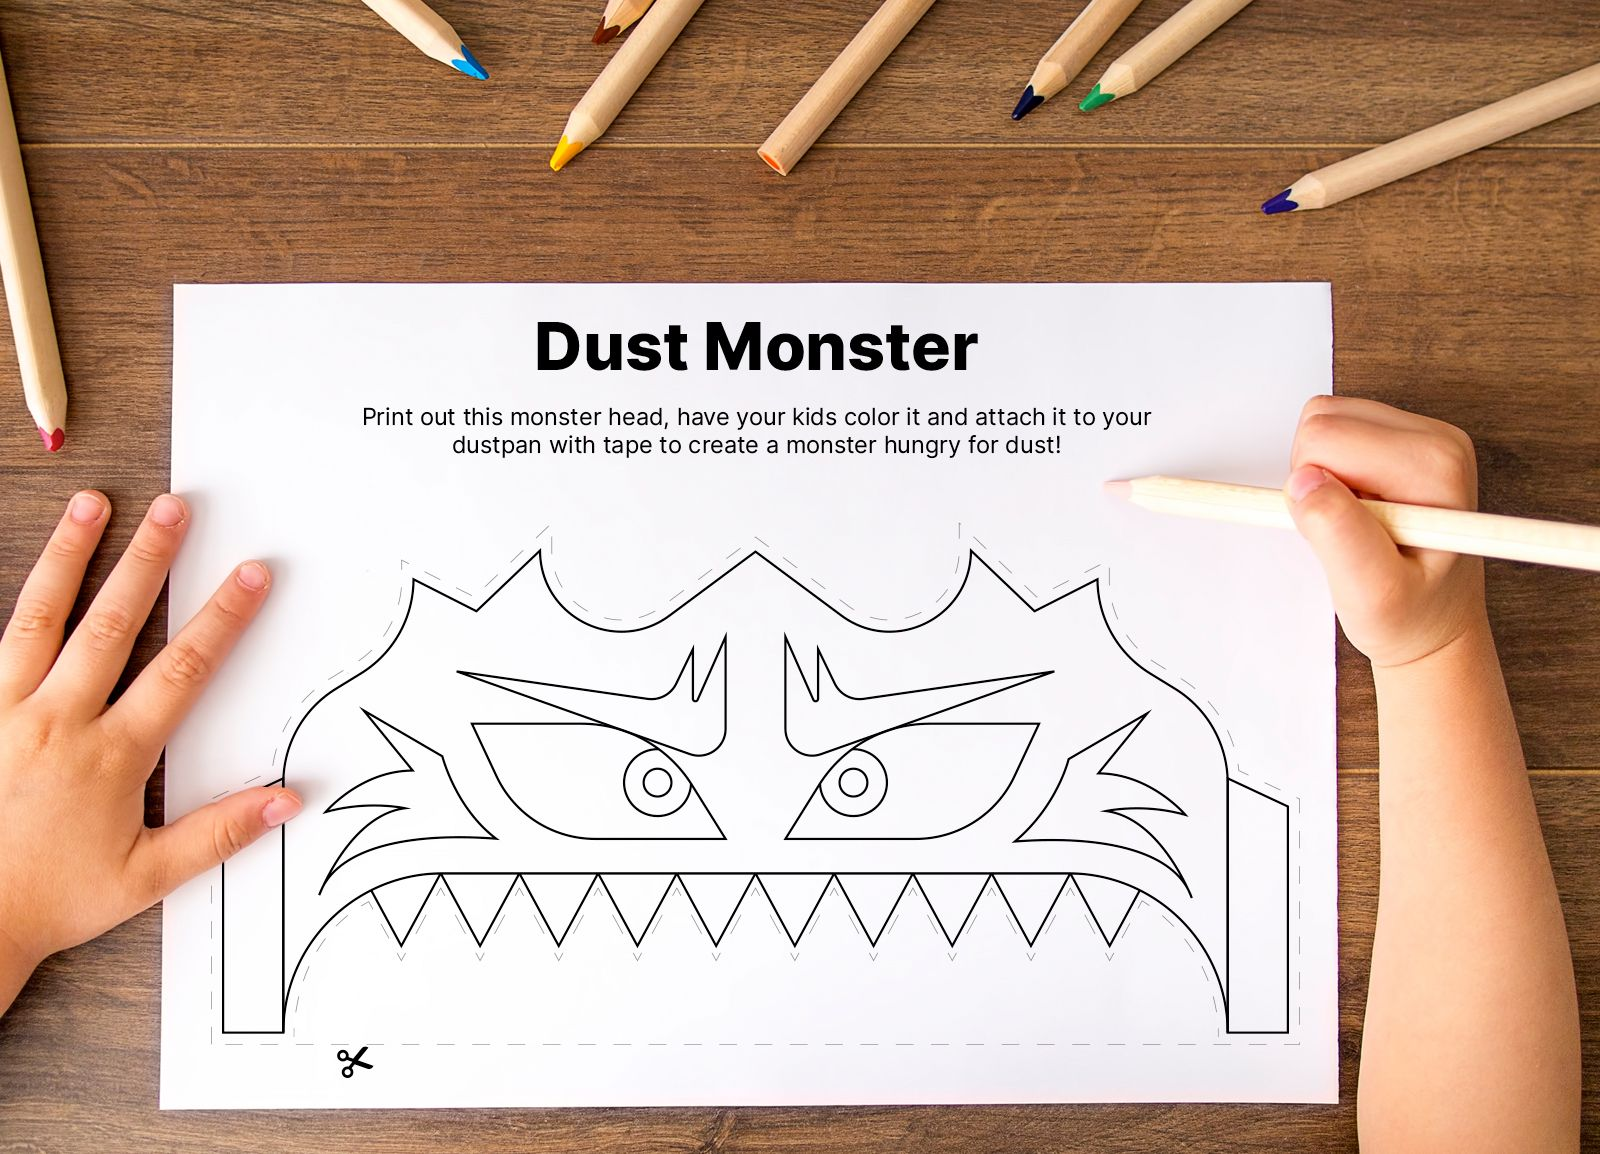 A child's hands prepare to color in a monster on a piece of paper.